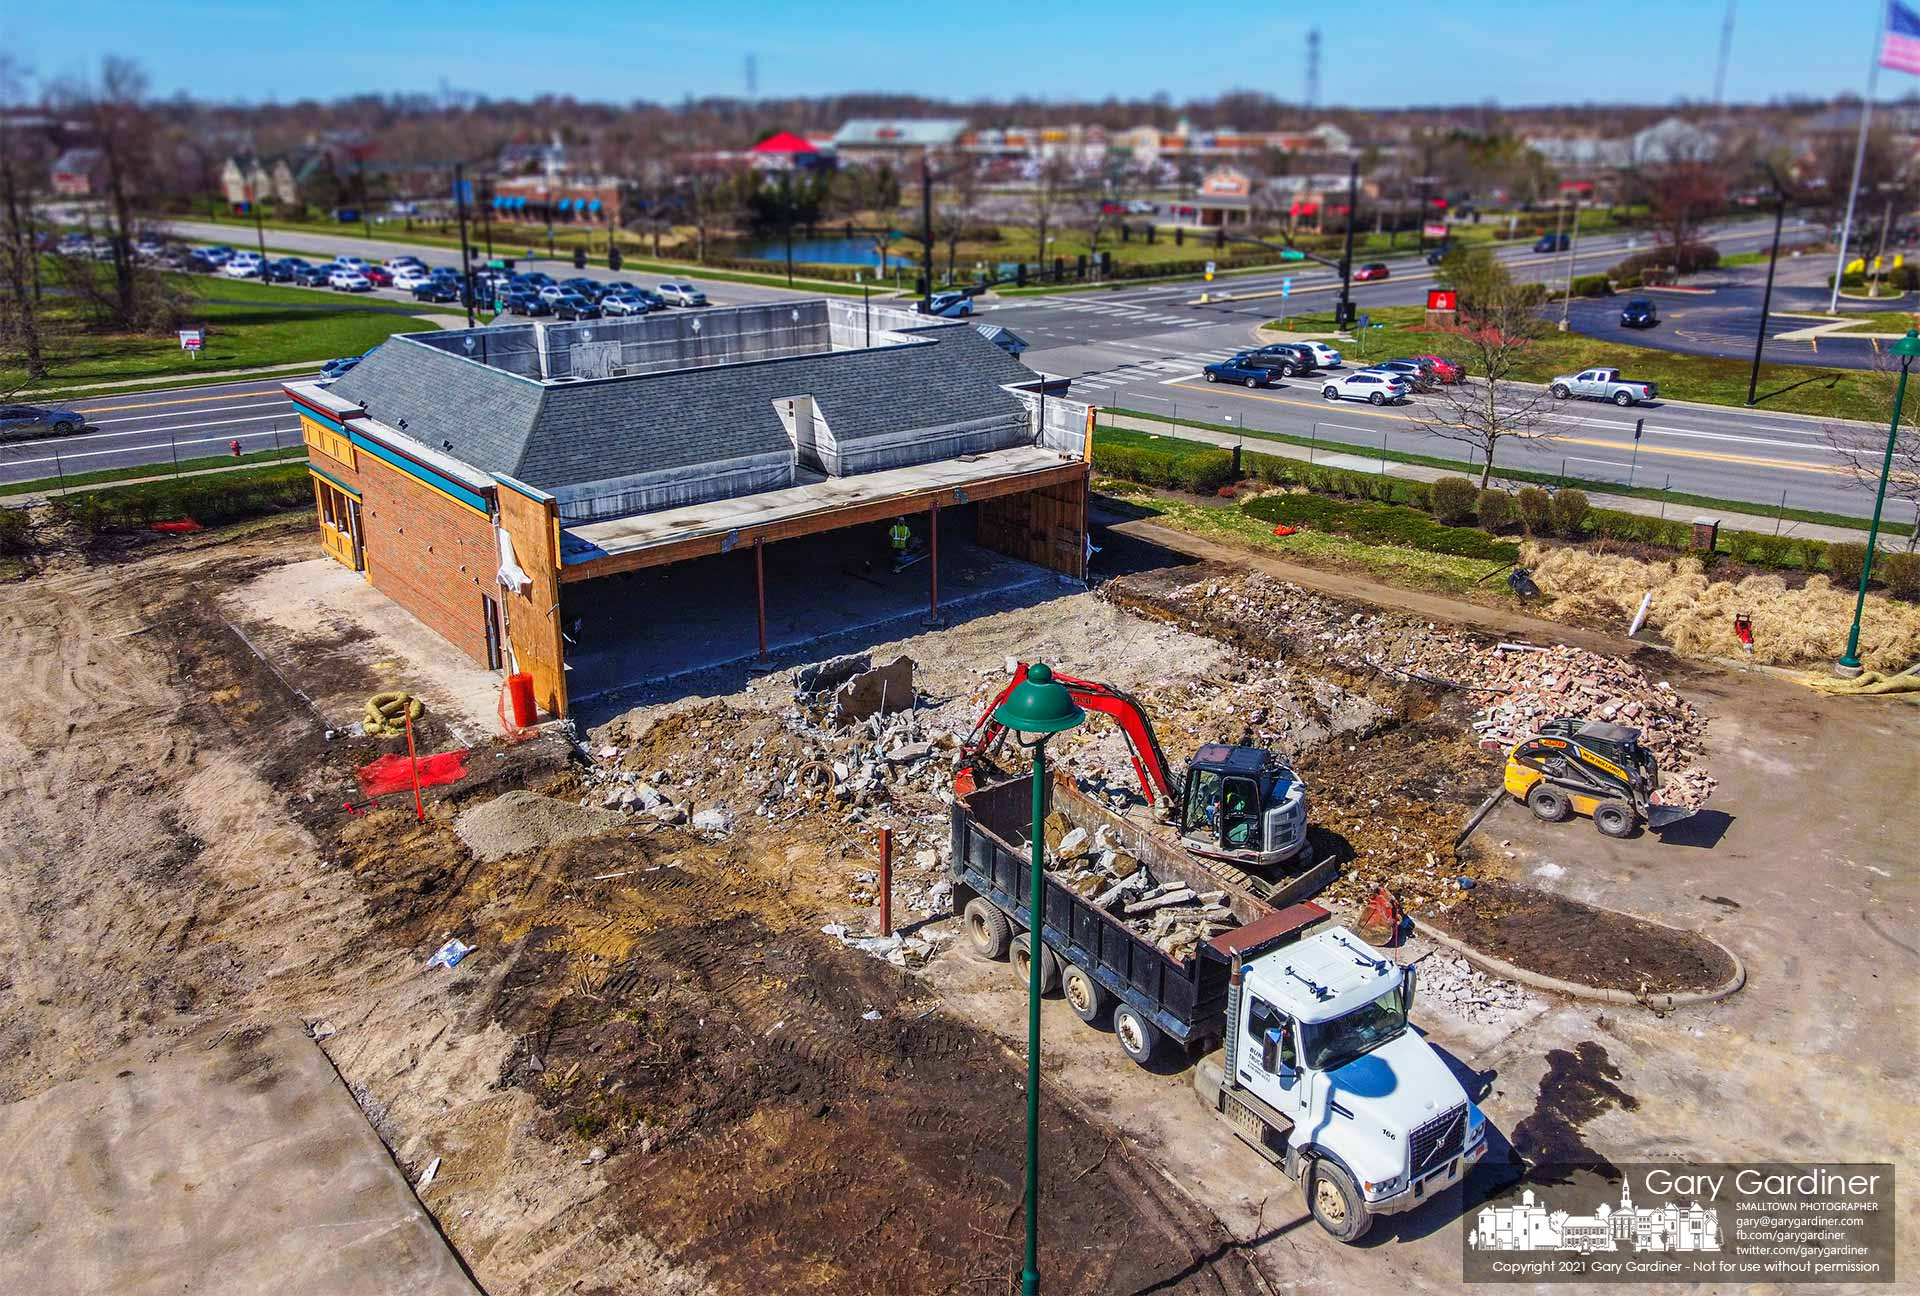 The kitchen and backrooms of Max and Erma's restaurant have been demolished and removed to make way for the construction of a bank building at the corner. My Final Photo for April 2, 2021.